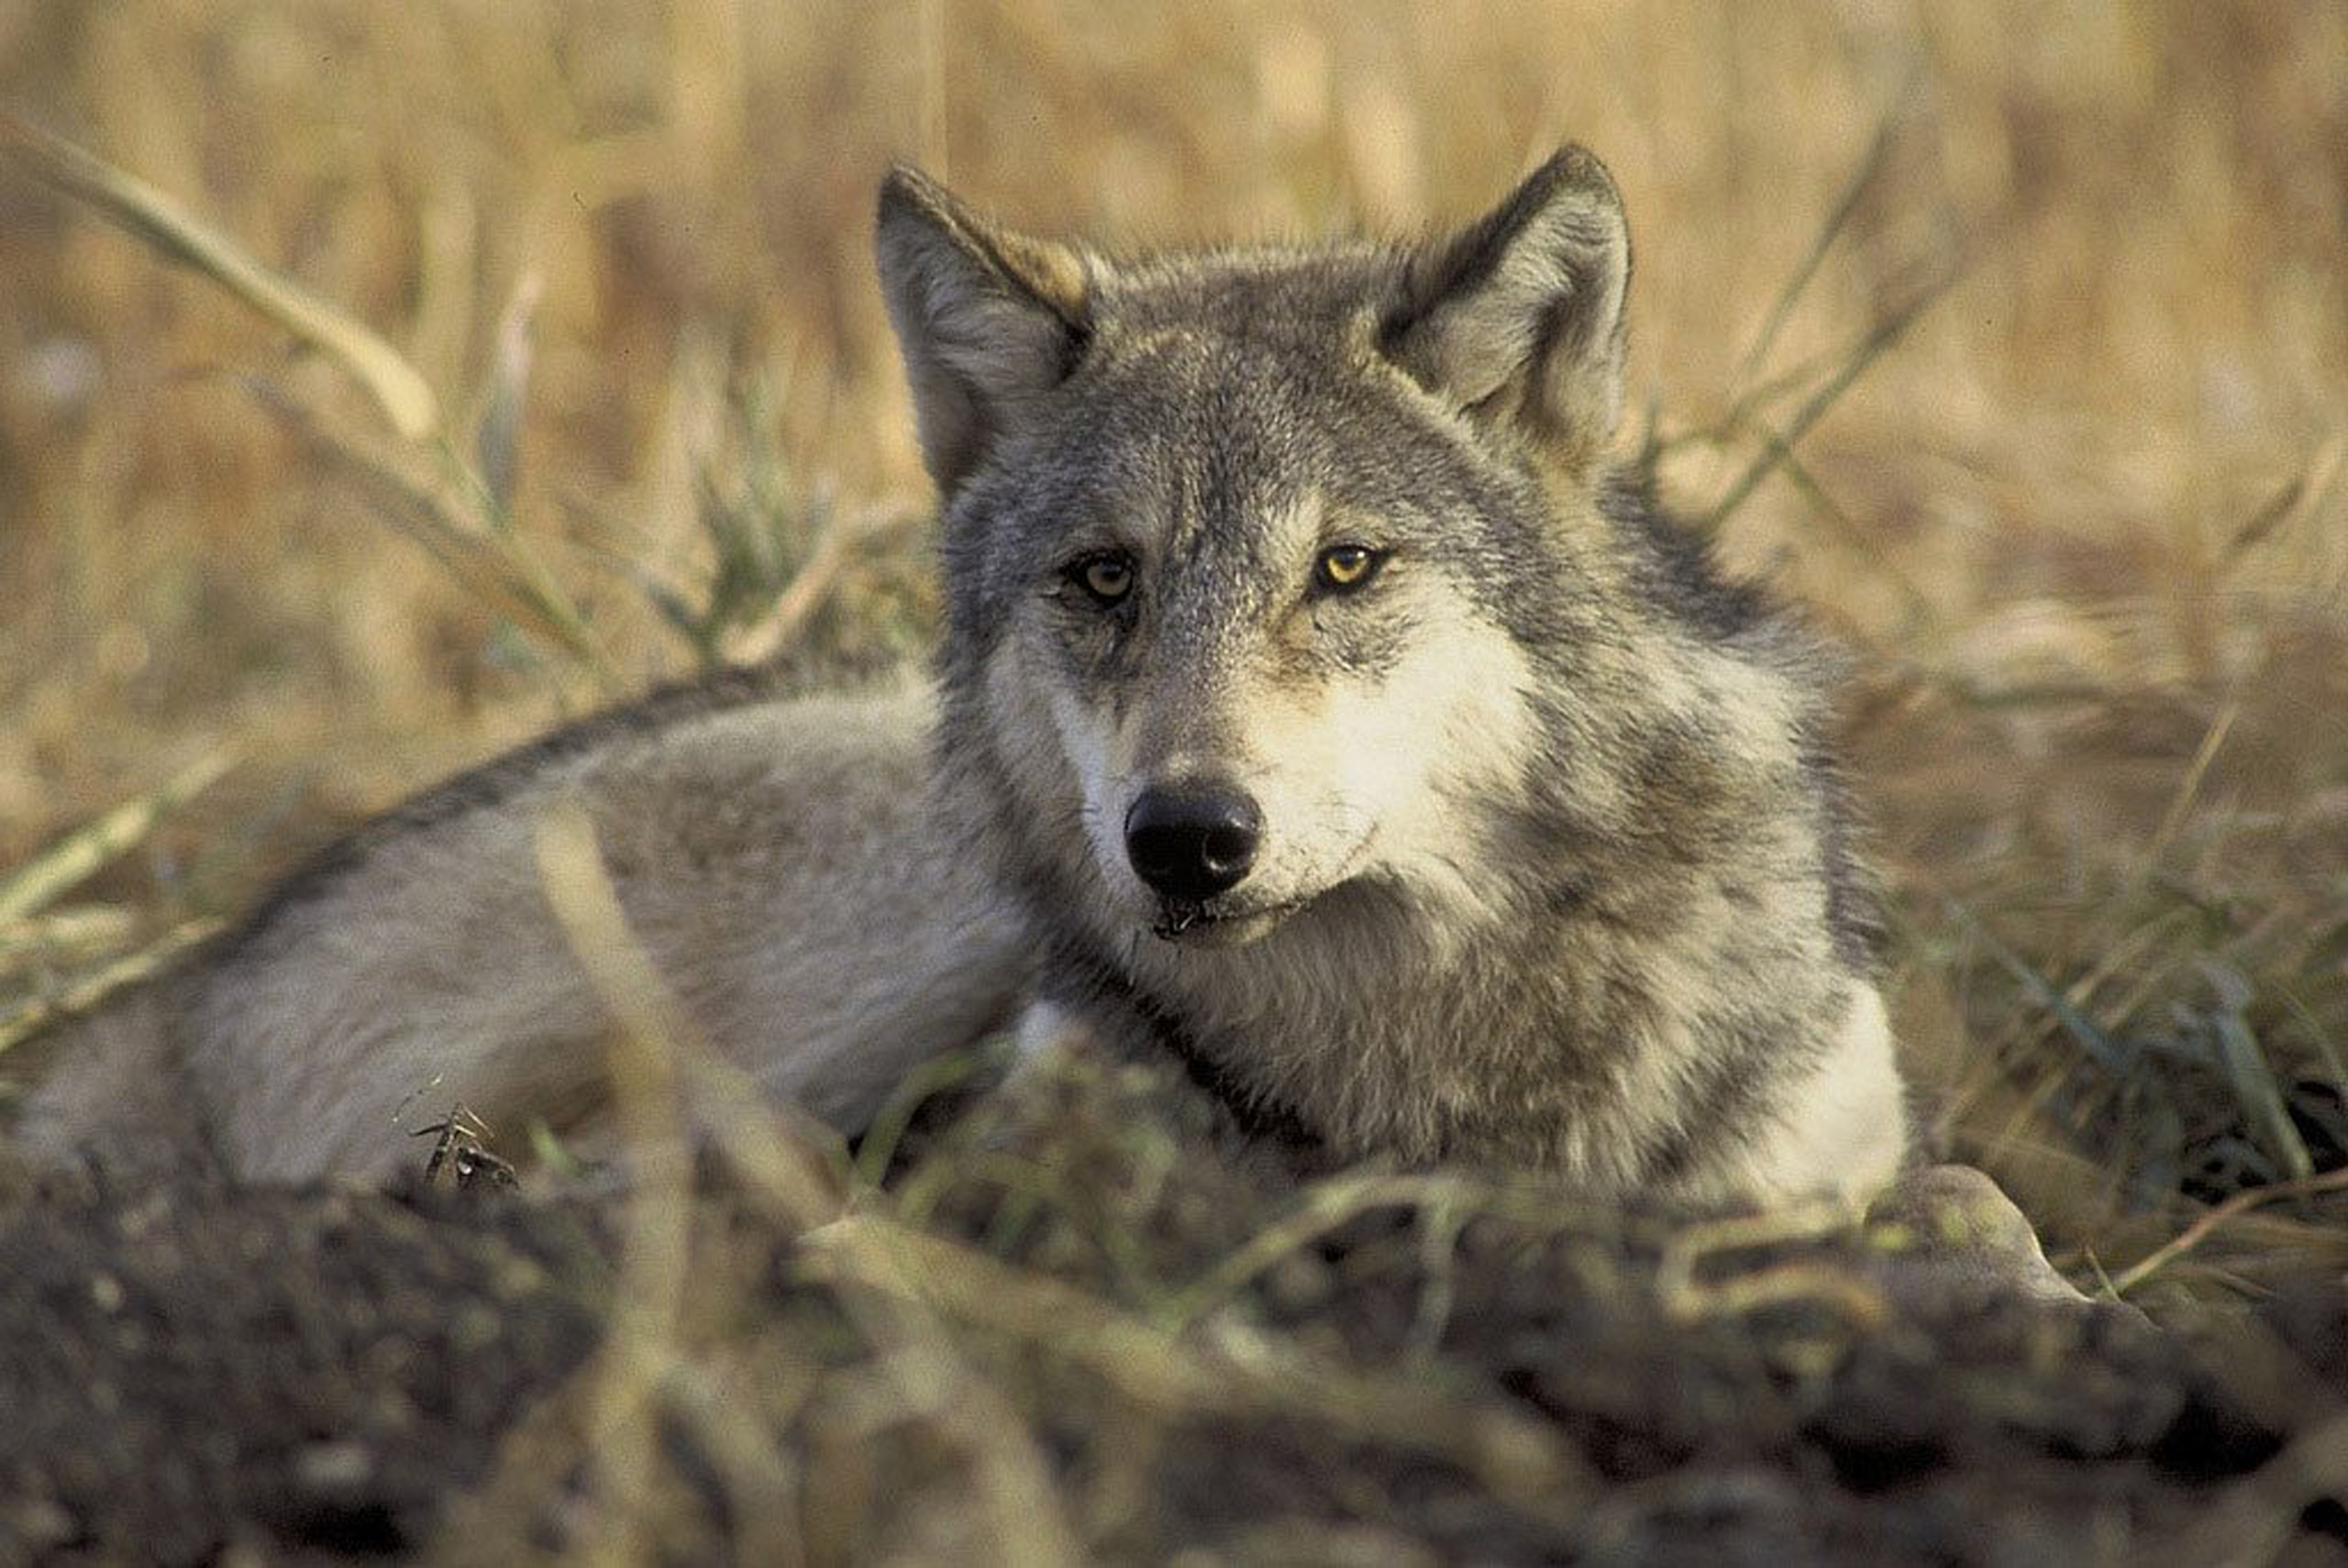 An endangered gray wolf is pictured in this undated handout photo from the U.S. Fish and Wildlife Service.